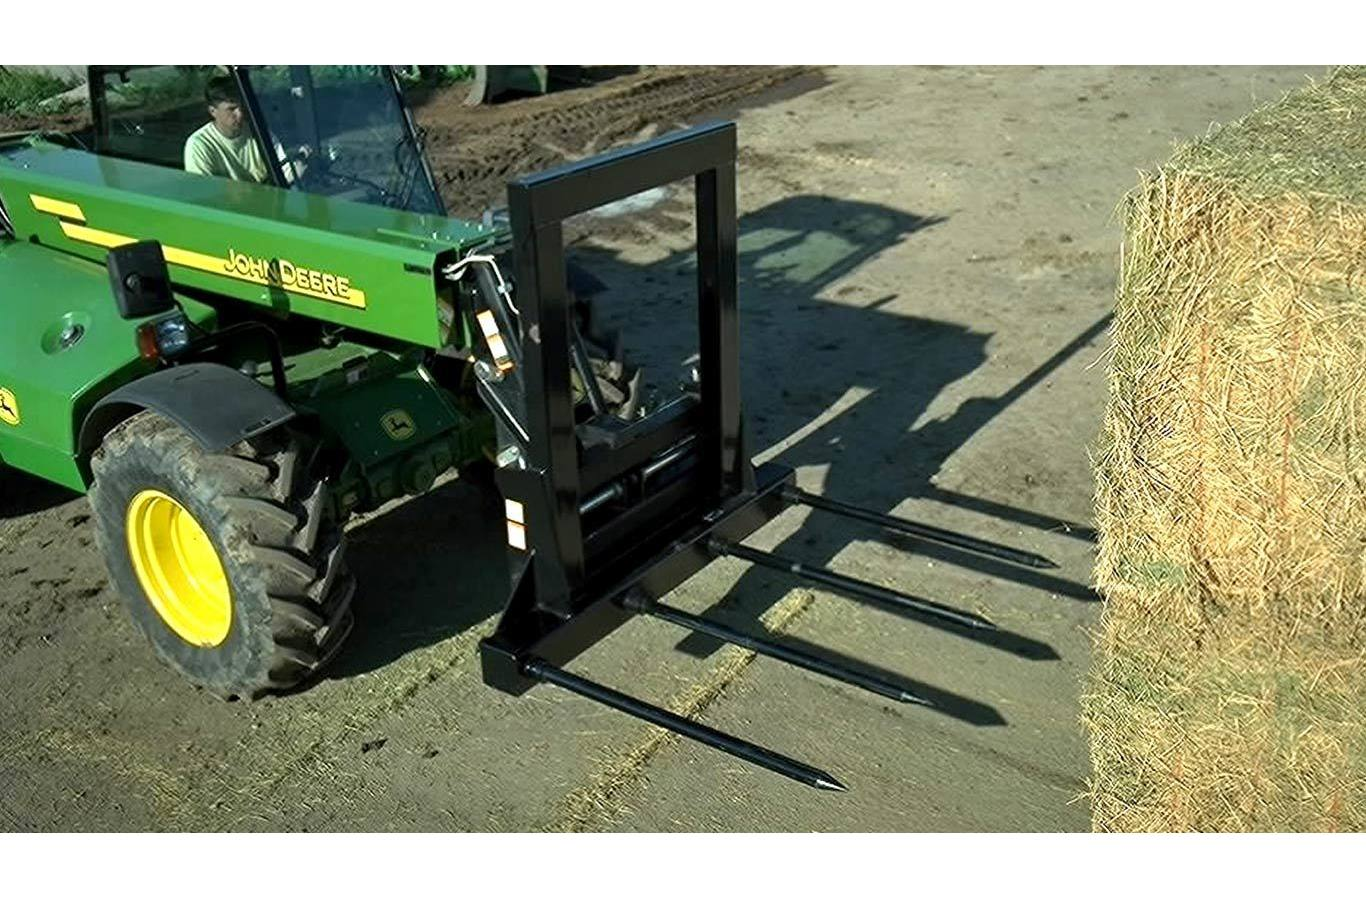 2019 John Deere AB15 2 Large Square Bales for sale in Lively